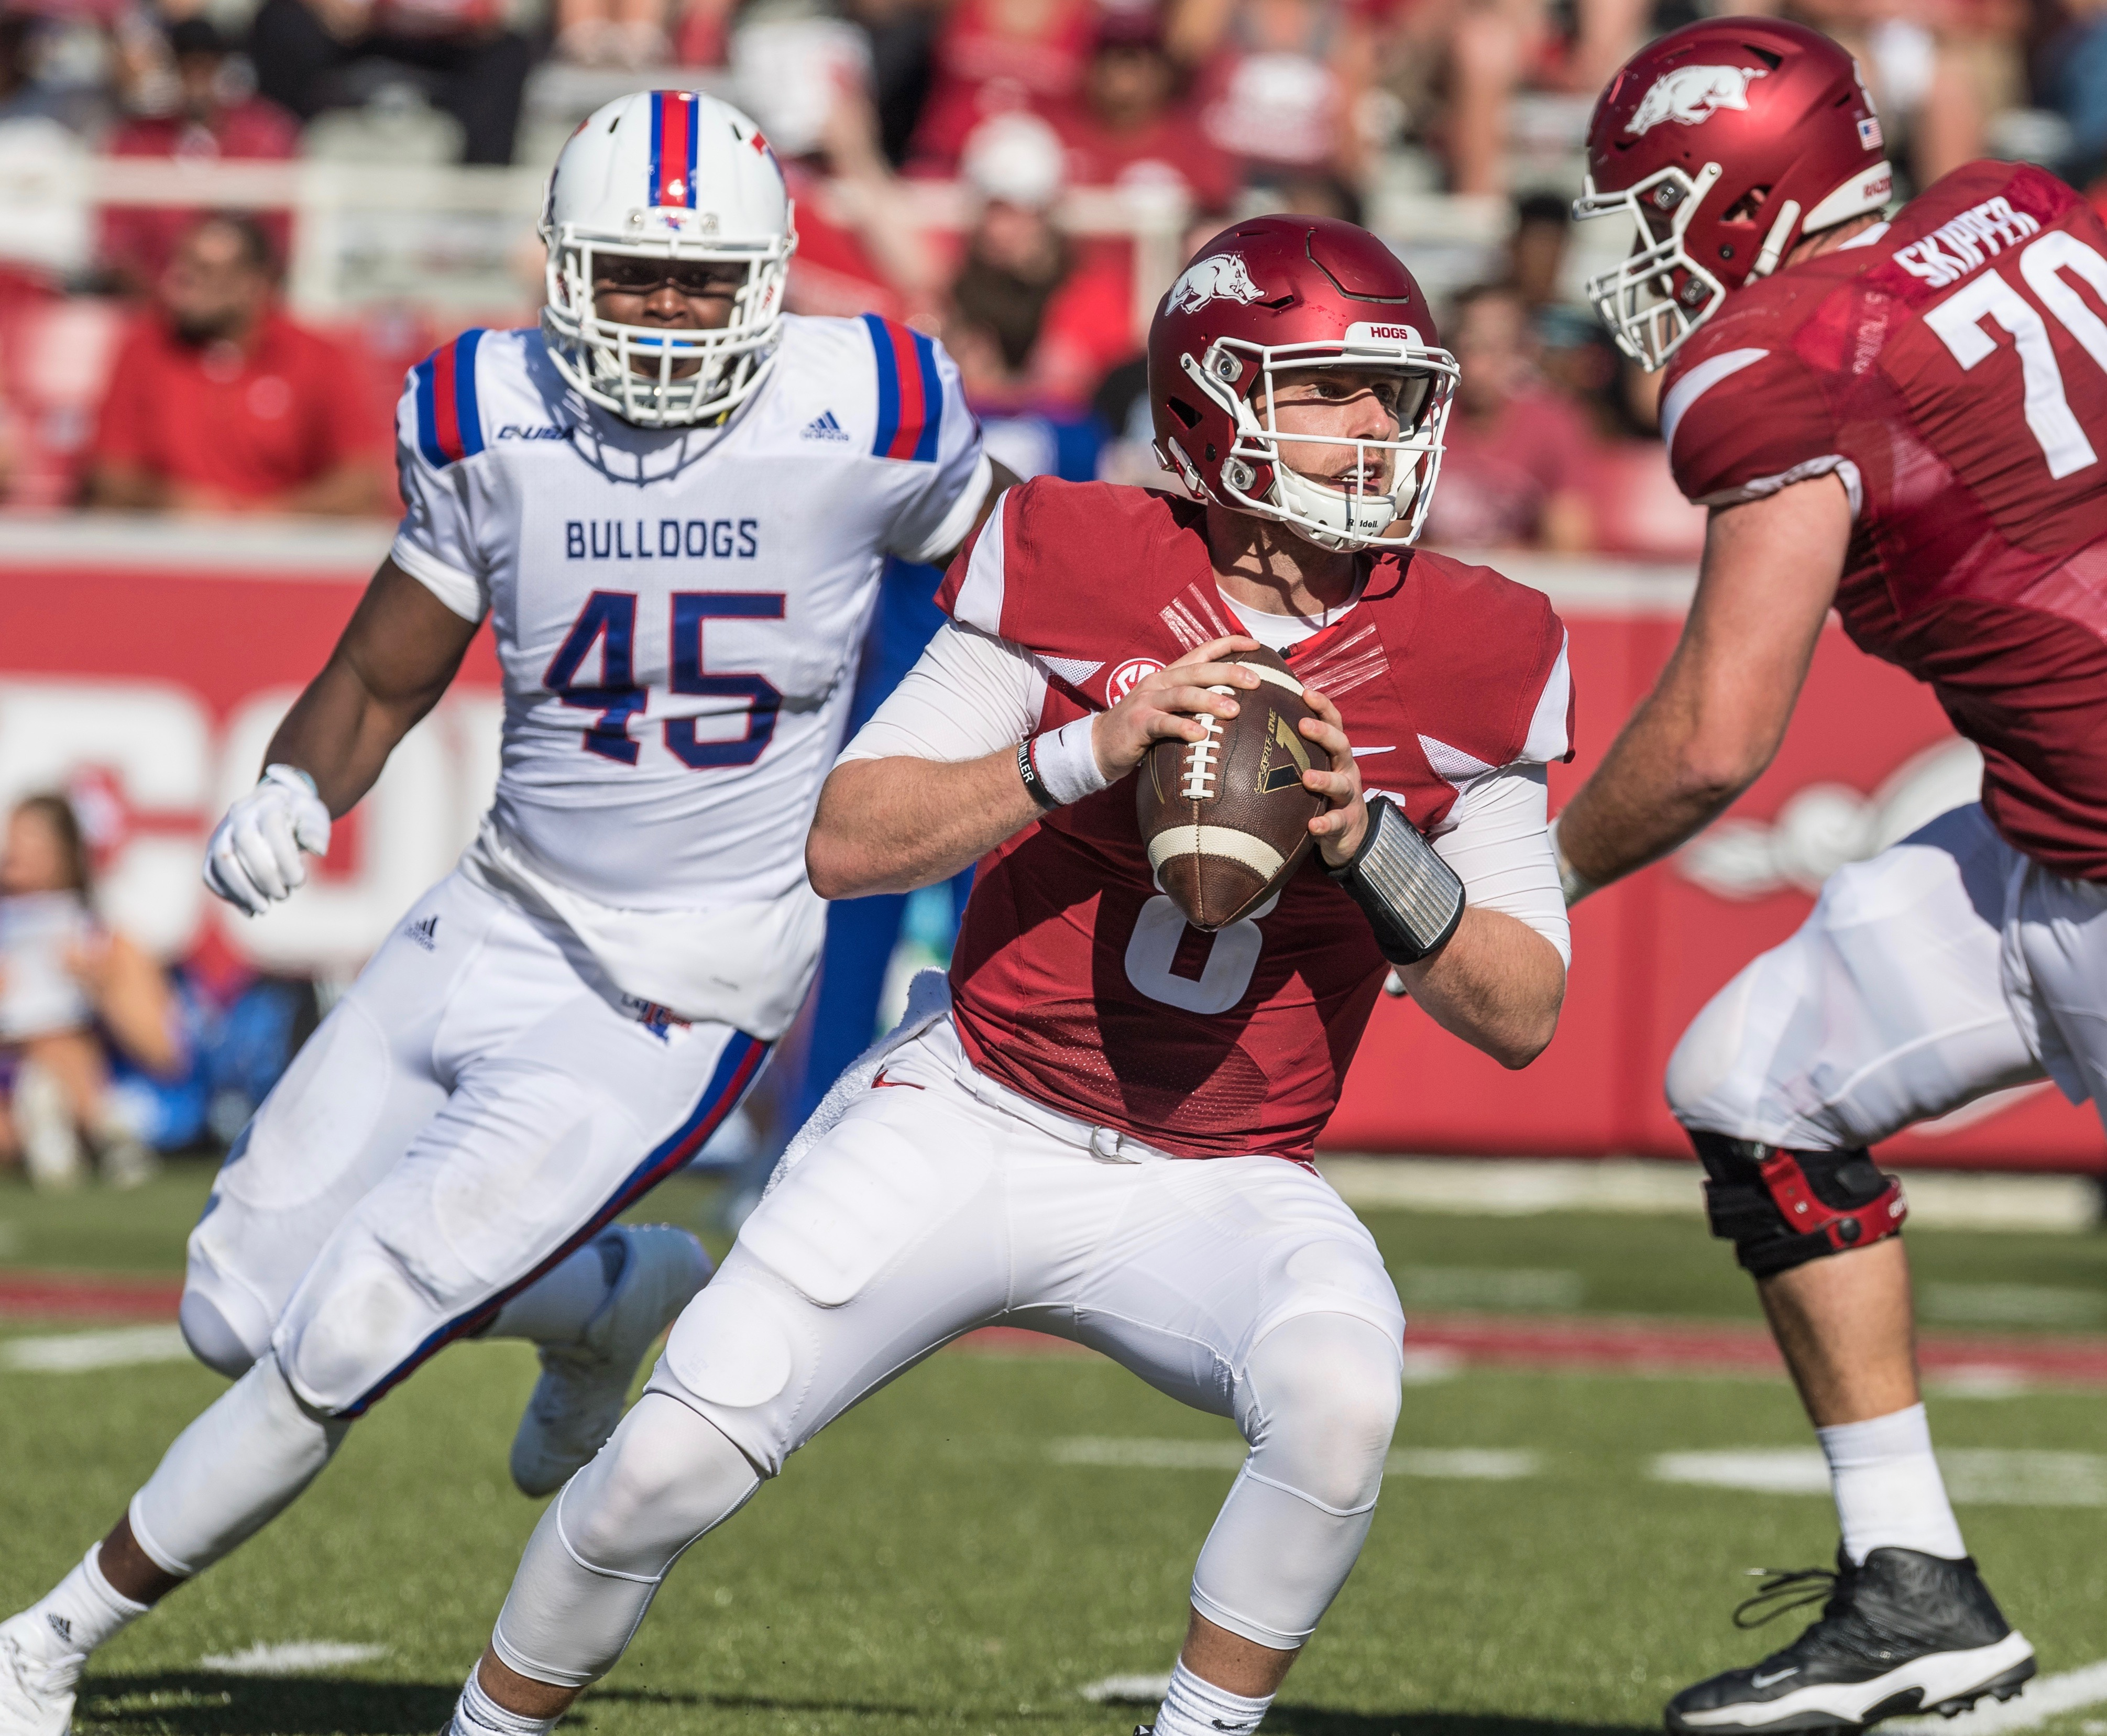 Hogs win ugly, top La. Tech 21-20